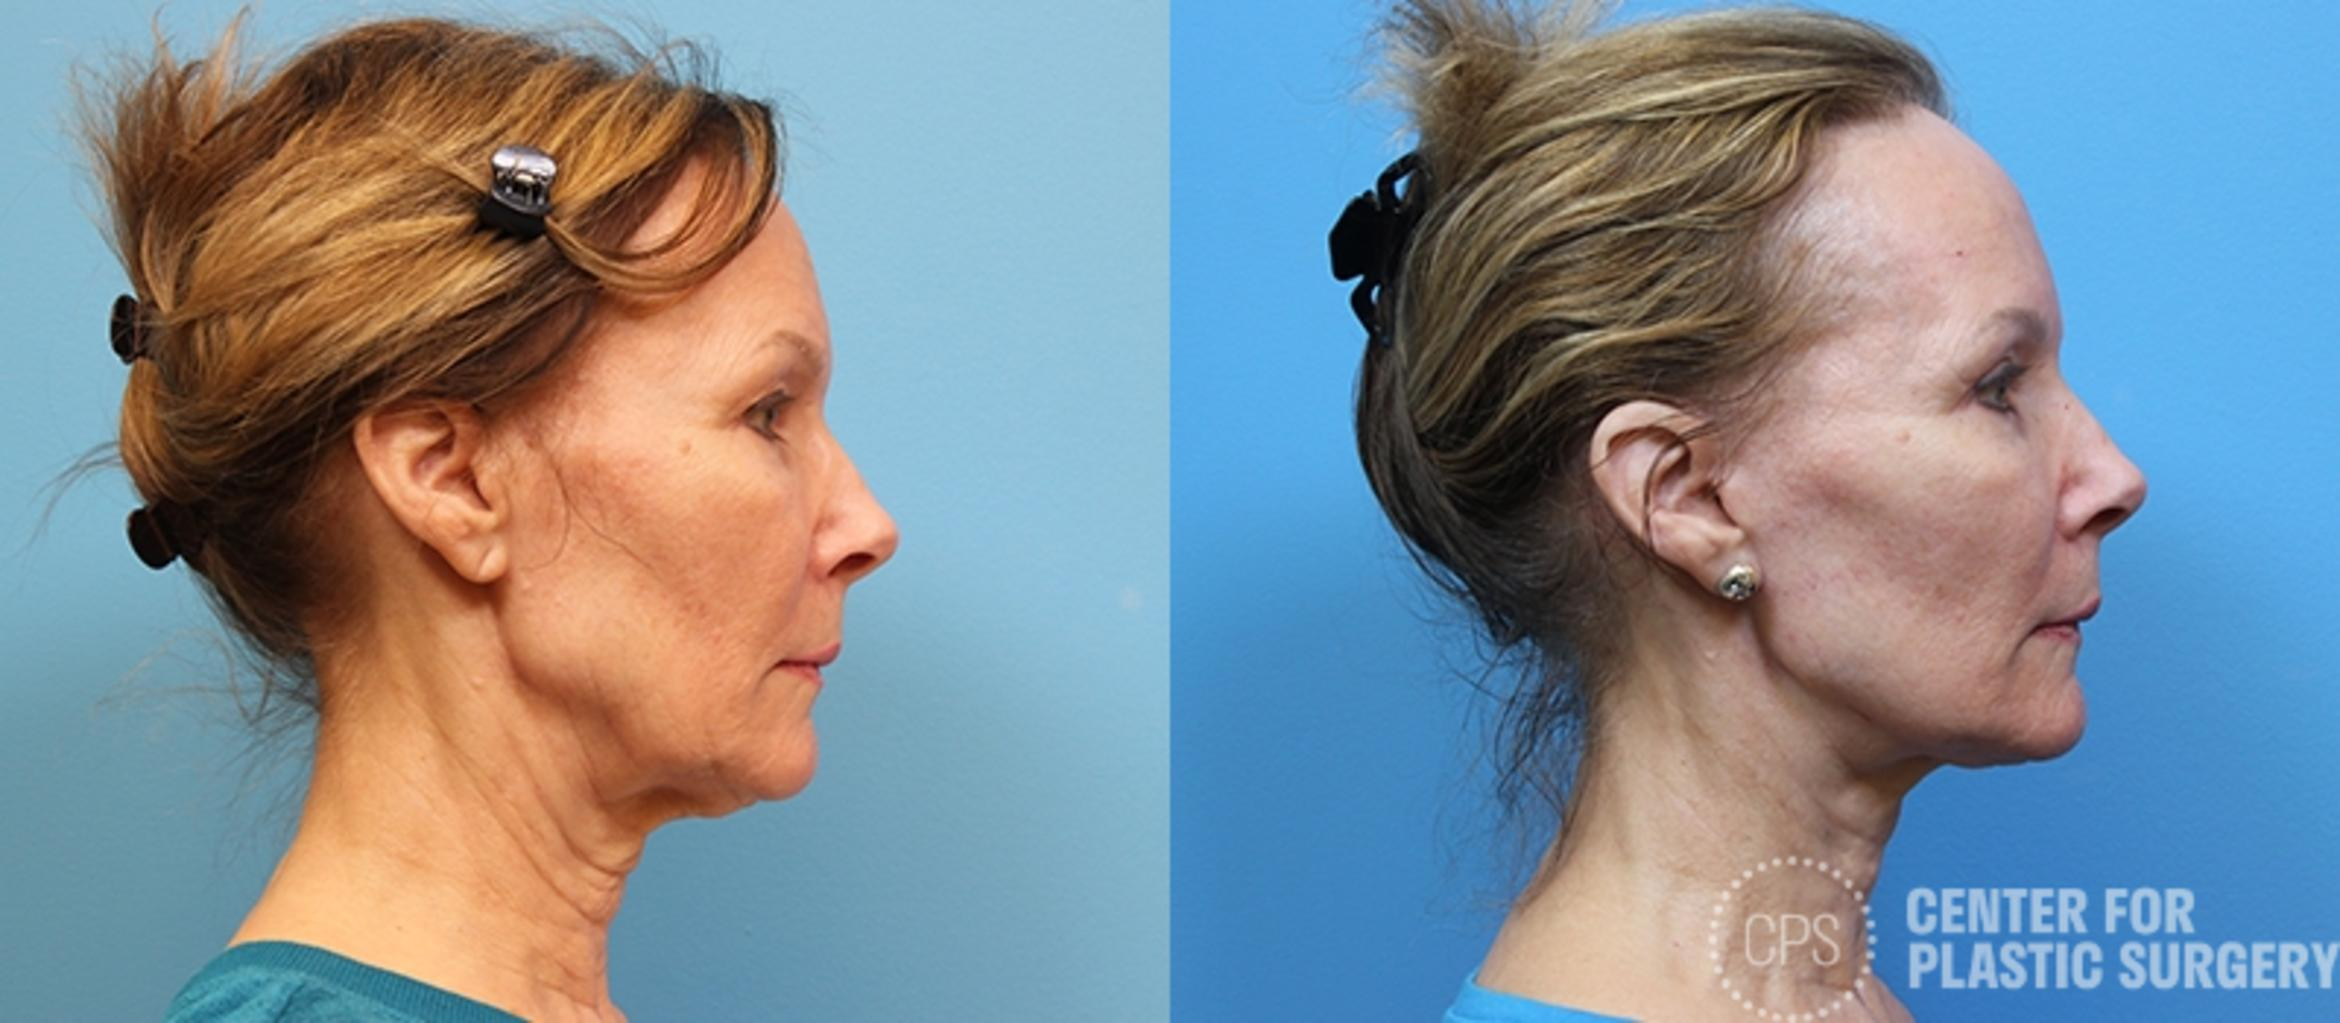 Facelift Case 1 Before & After Right Side | Annandale, VA & Chevy Chase, MD, Washington D.C. Metropolitan Area | Center for Plastic Surgery